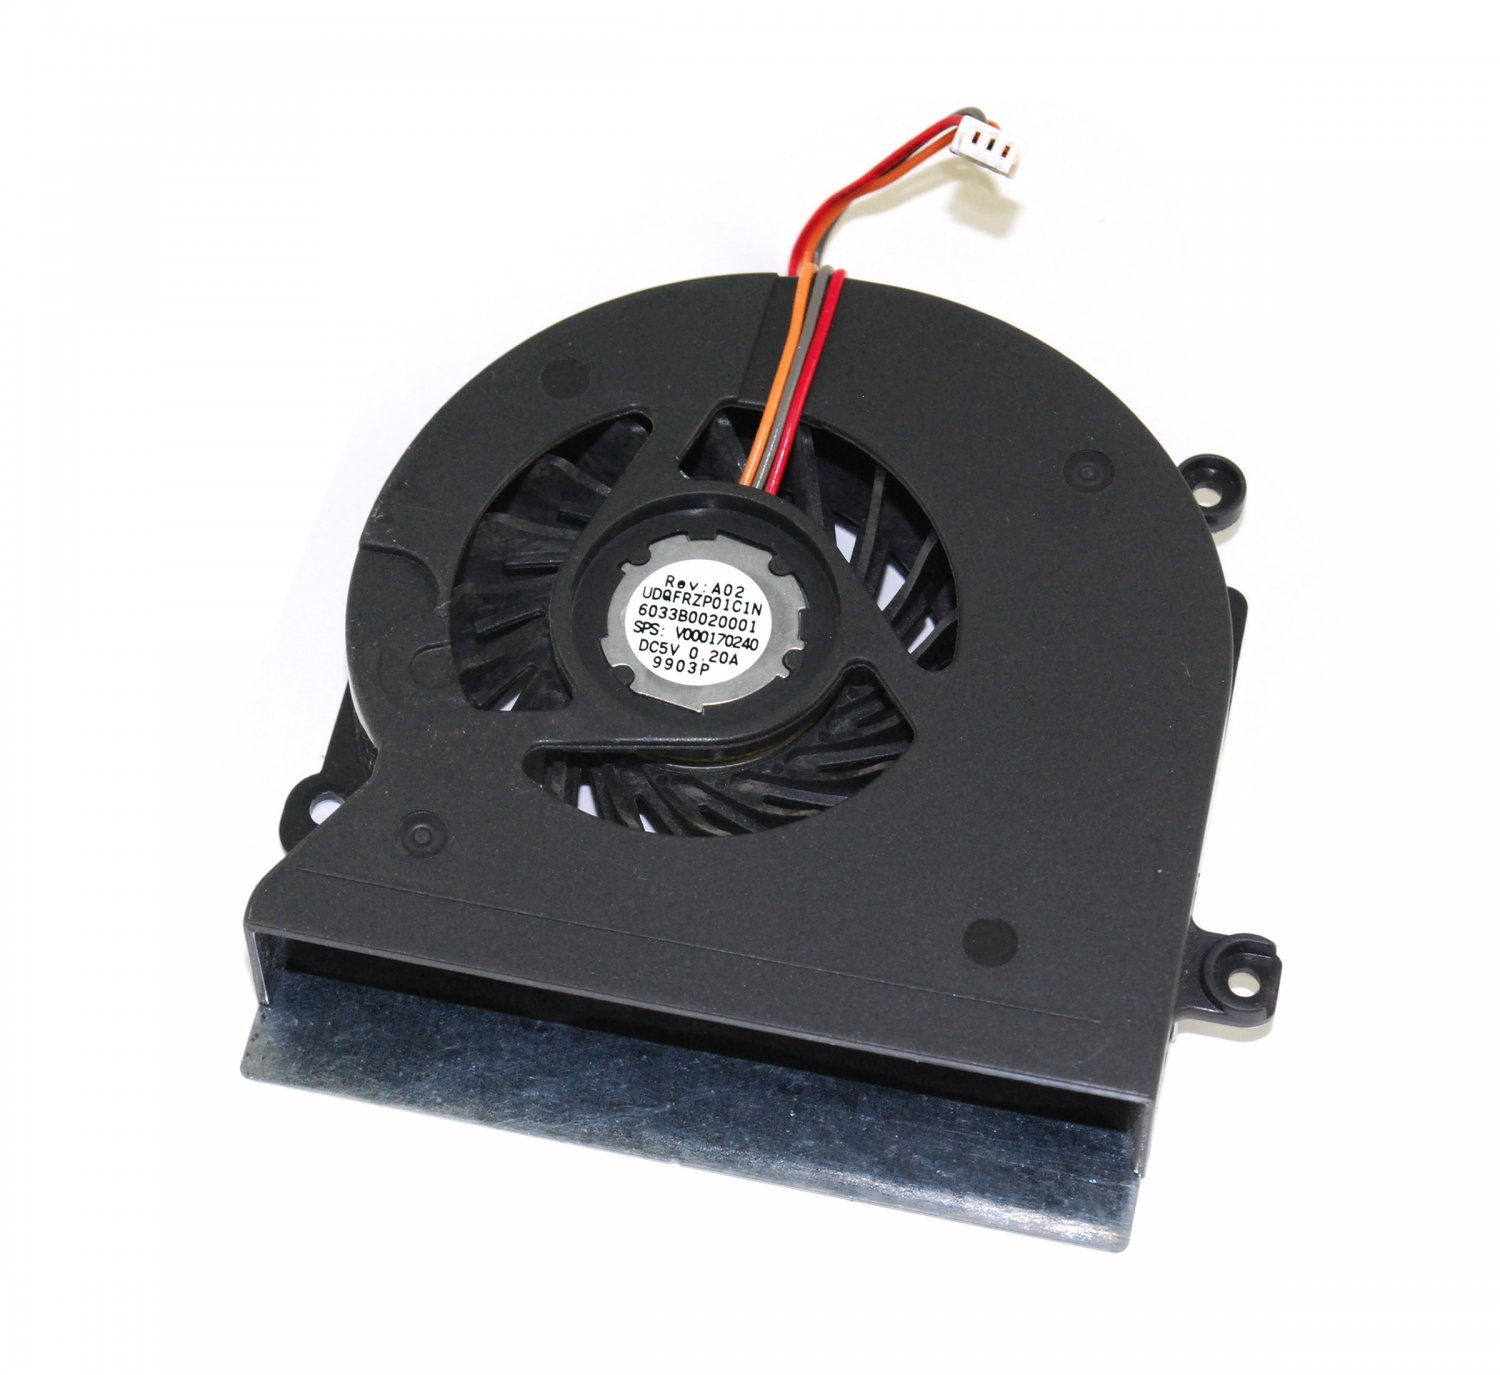 CPU Cooling Fan for Toshiba Satellite A505 A505D P/N MCF-812BM05